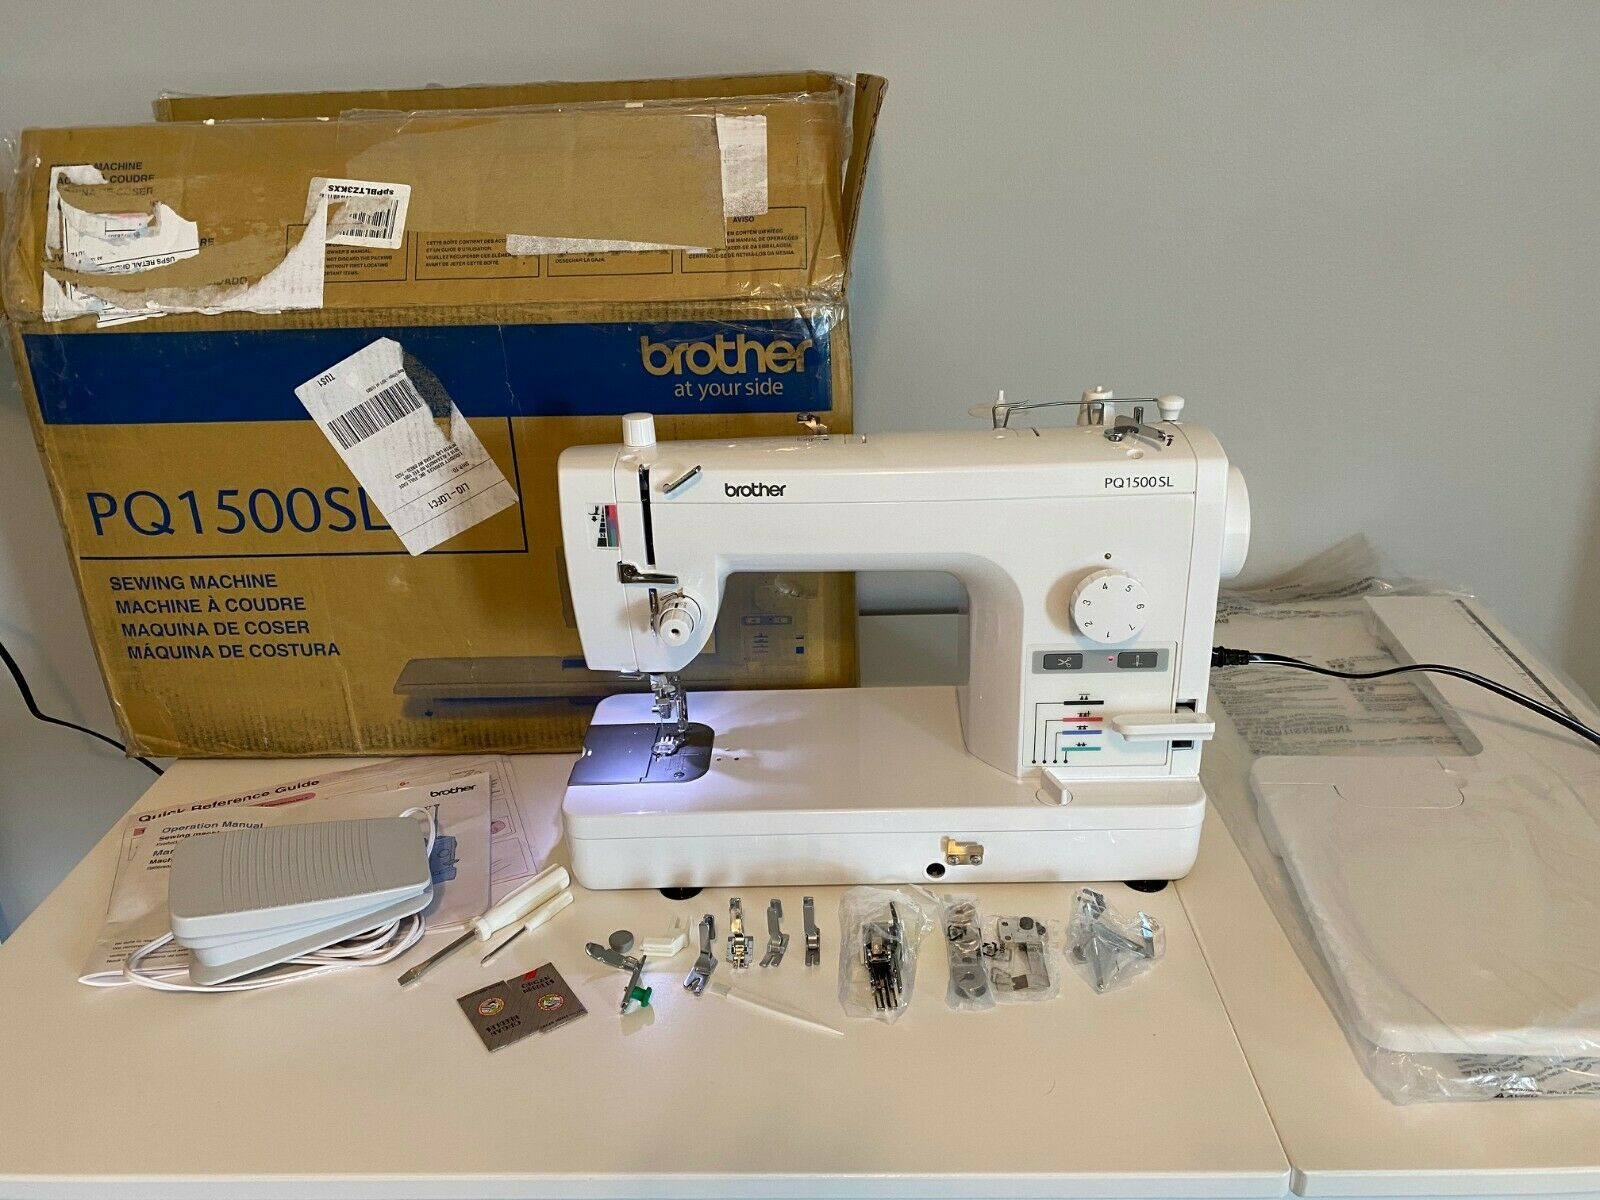 s l1600 - Brother PQ1500SL Straight Stitch Sewing Machine